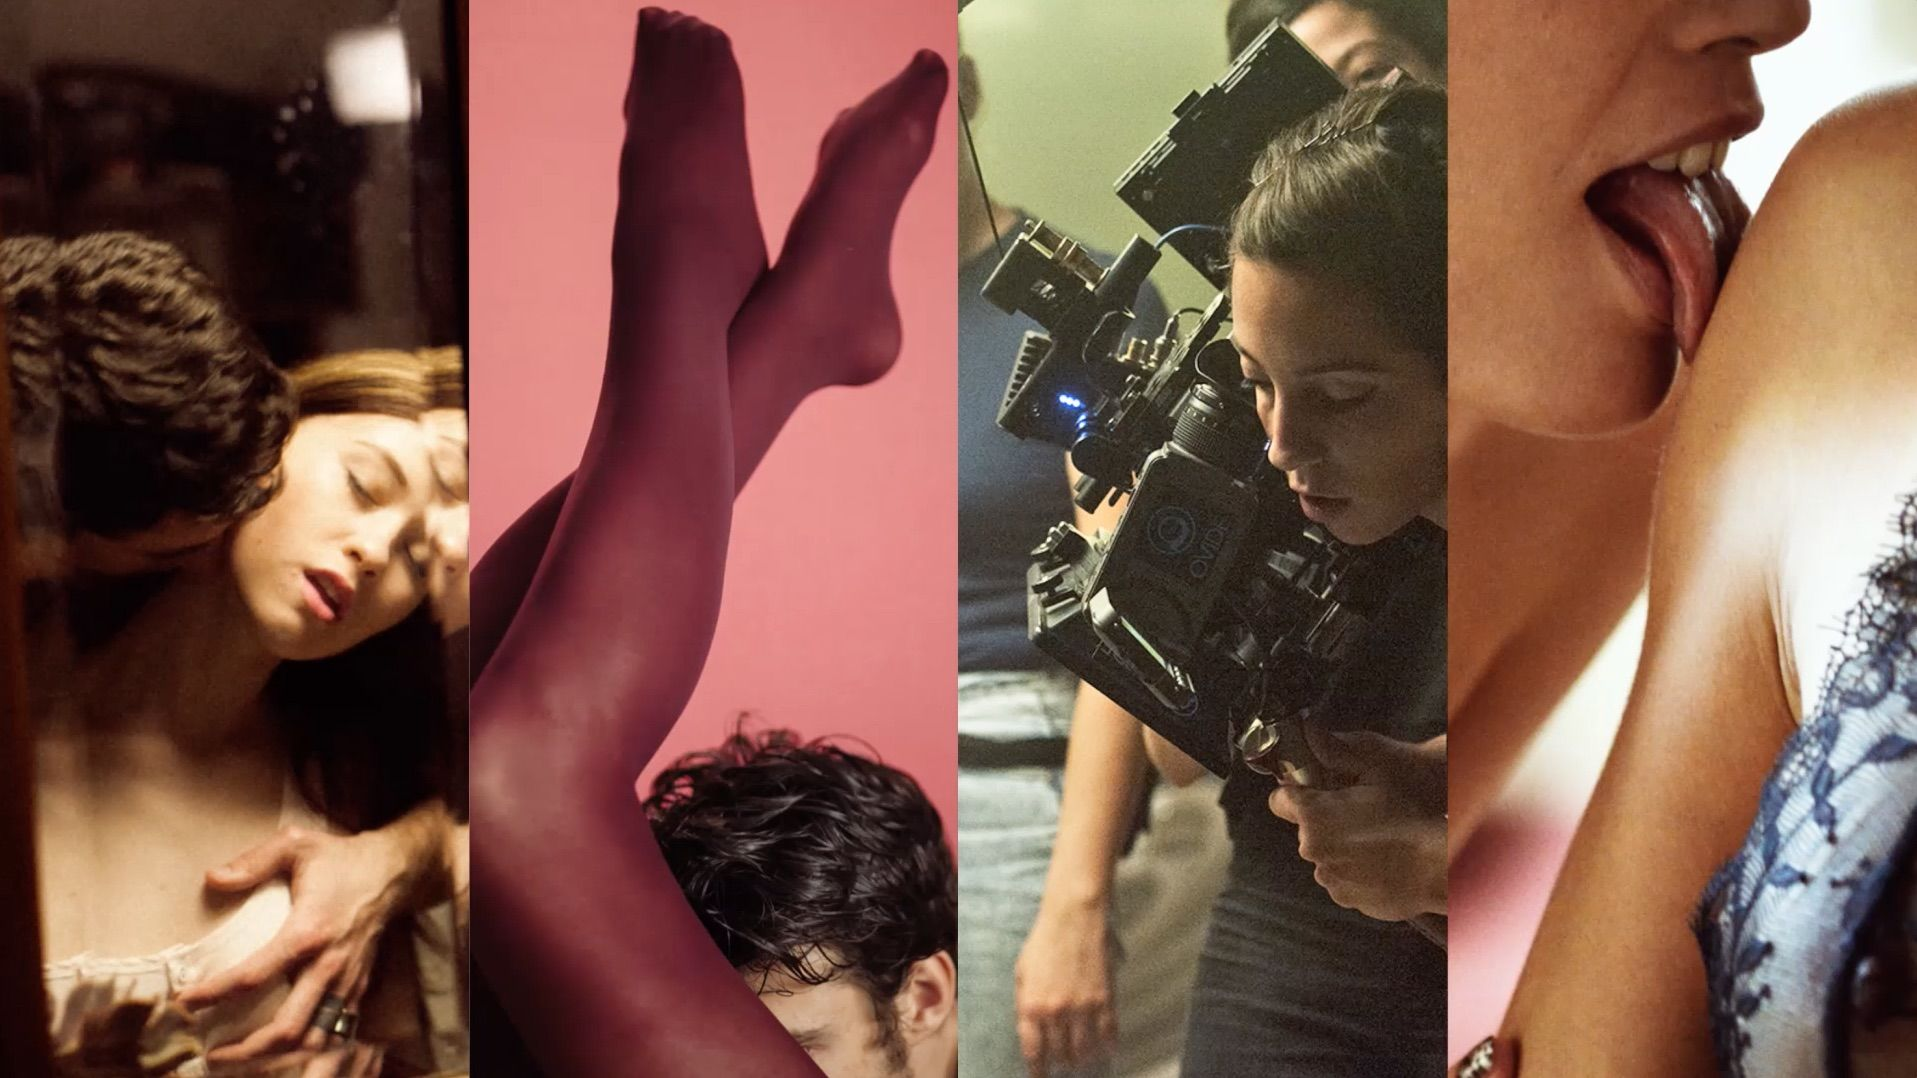 Best New Porn For Women How Female Filmmakers Are Reinventing Pornography